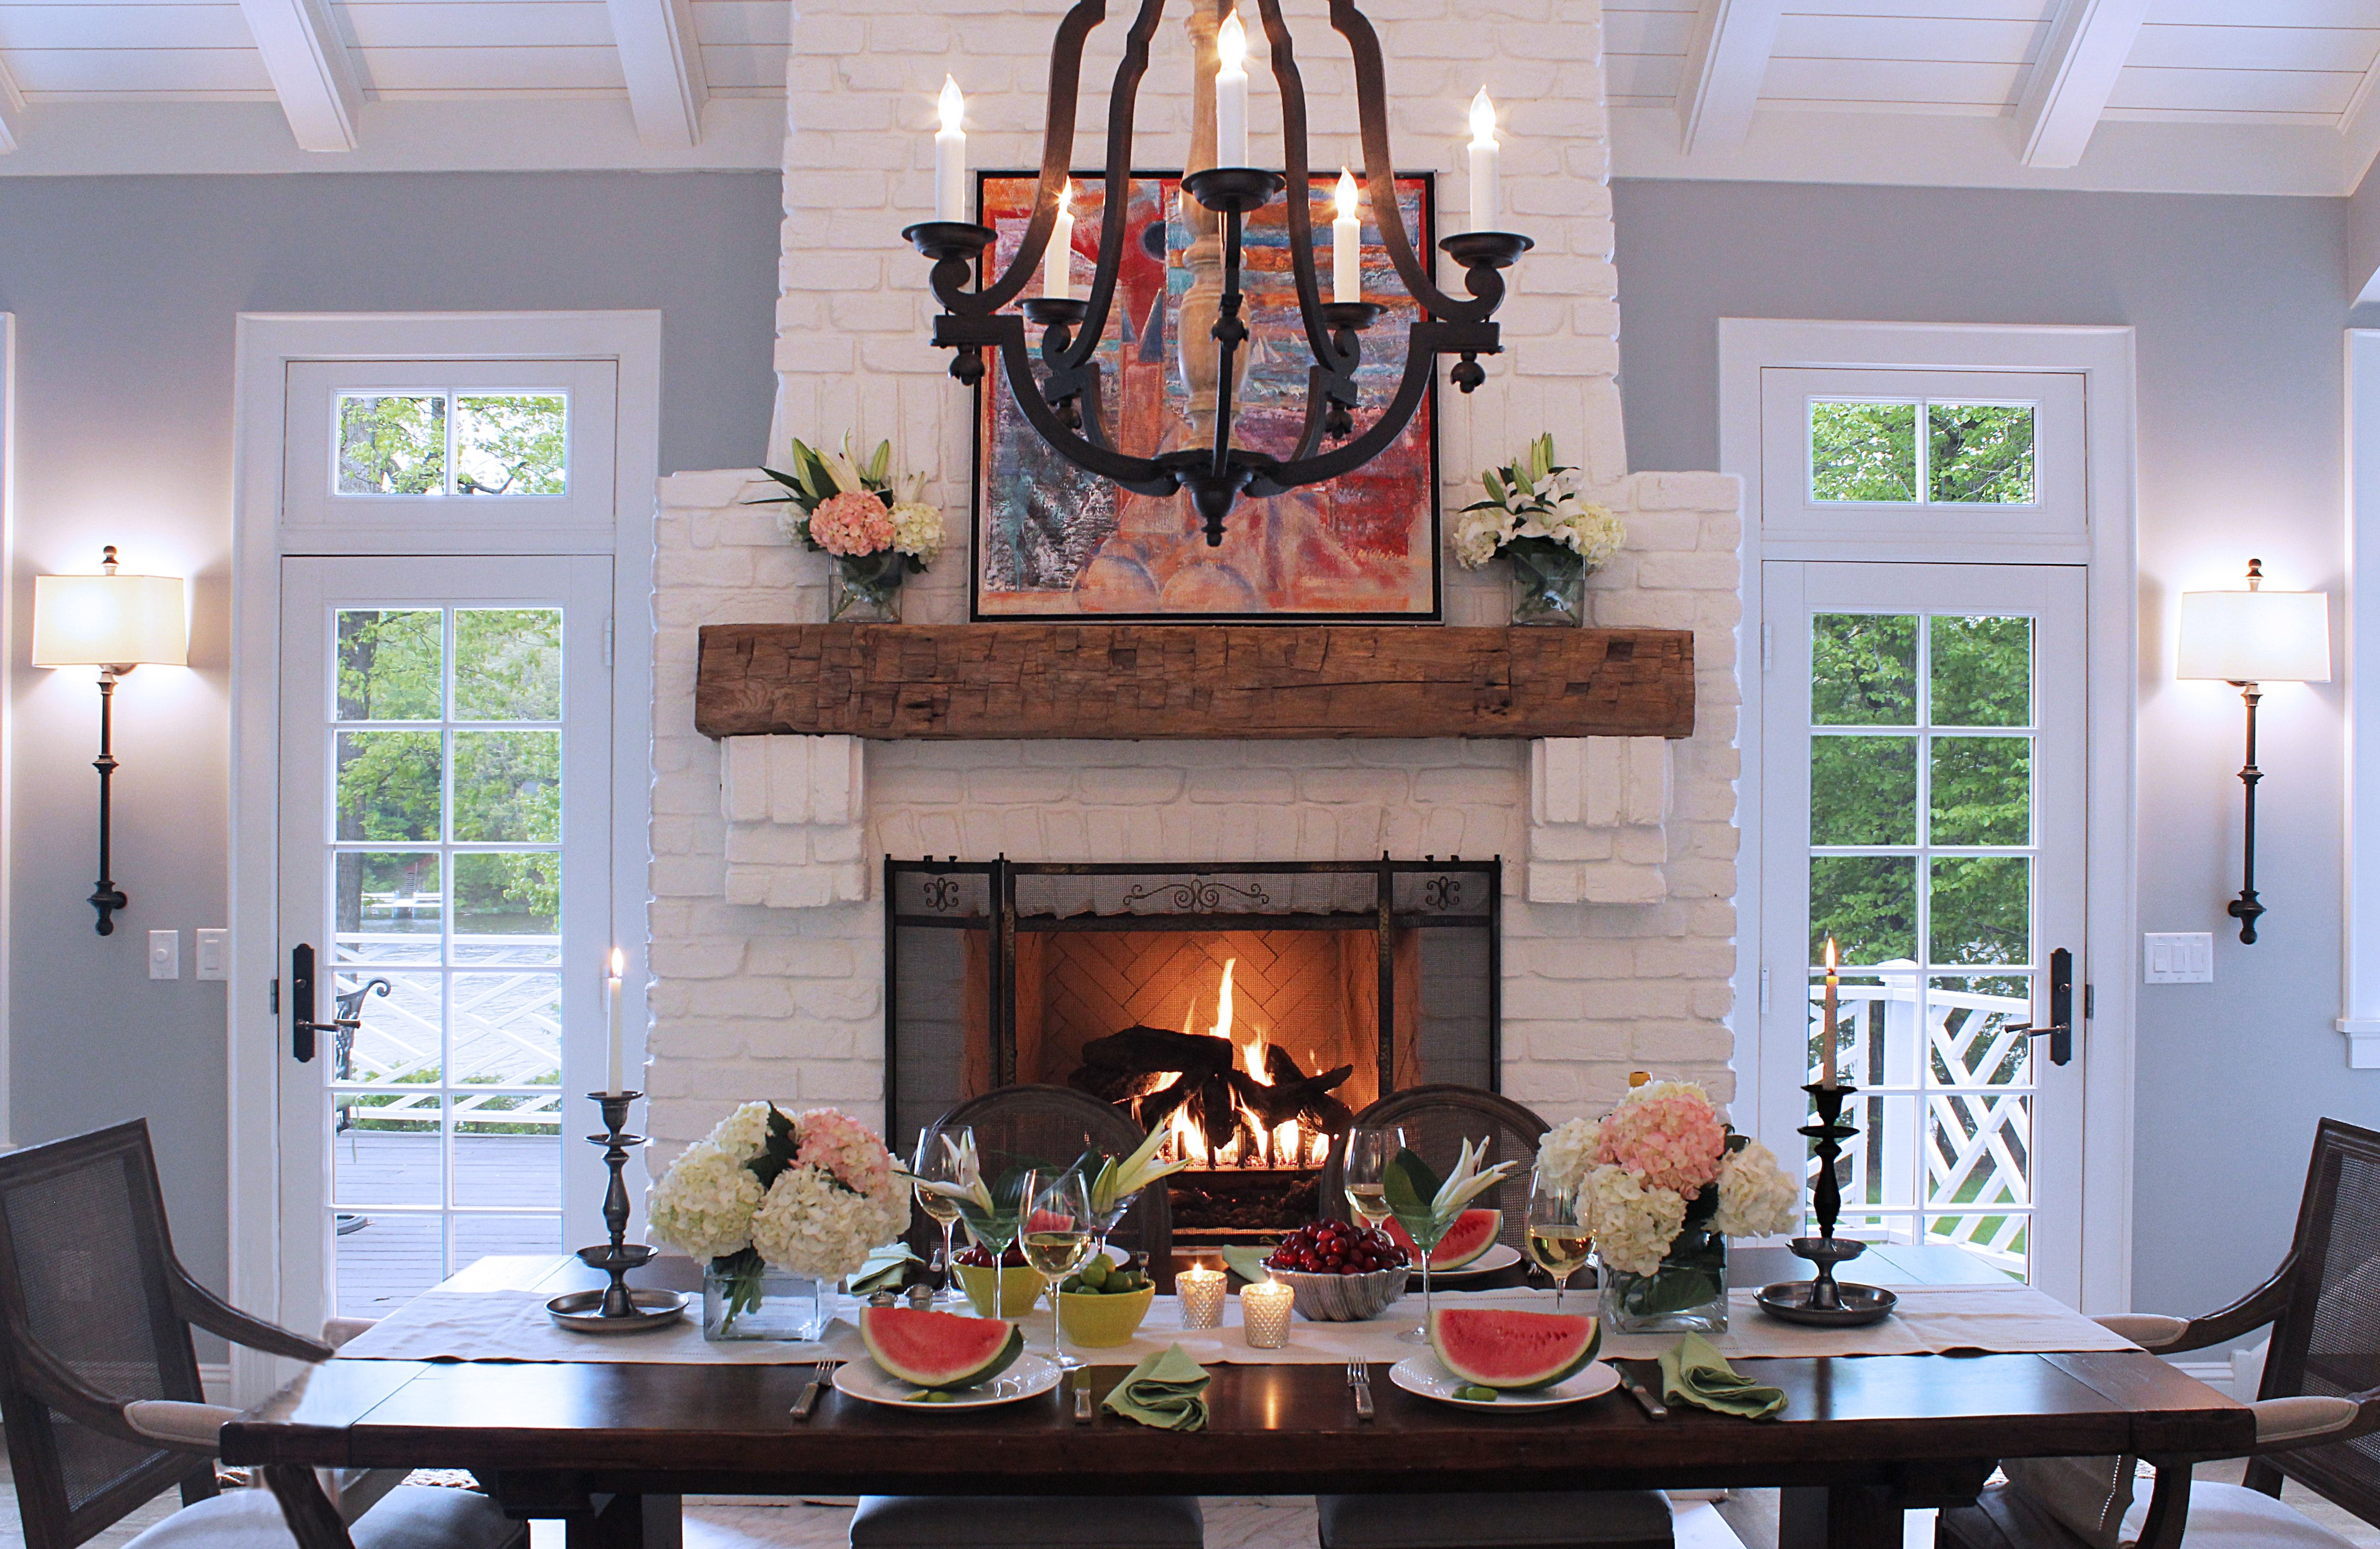 Breakfast Dining By The Warmth Of A Fire Great Mantel Fireplace White Brick